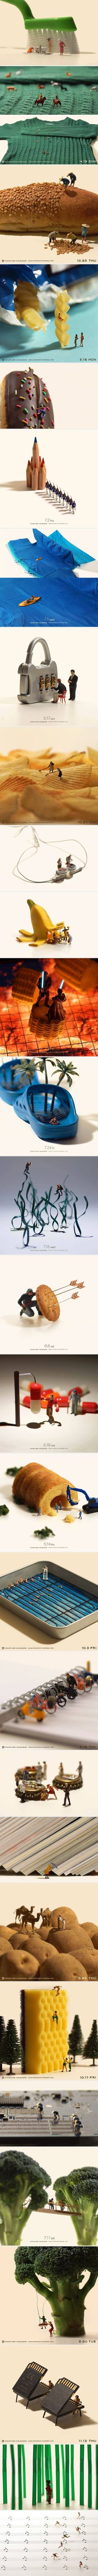 Tiny figurines interacting with everyday objects in interesting ways (By Miniature Calendar)